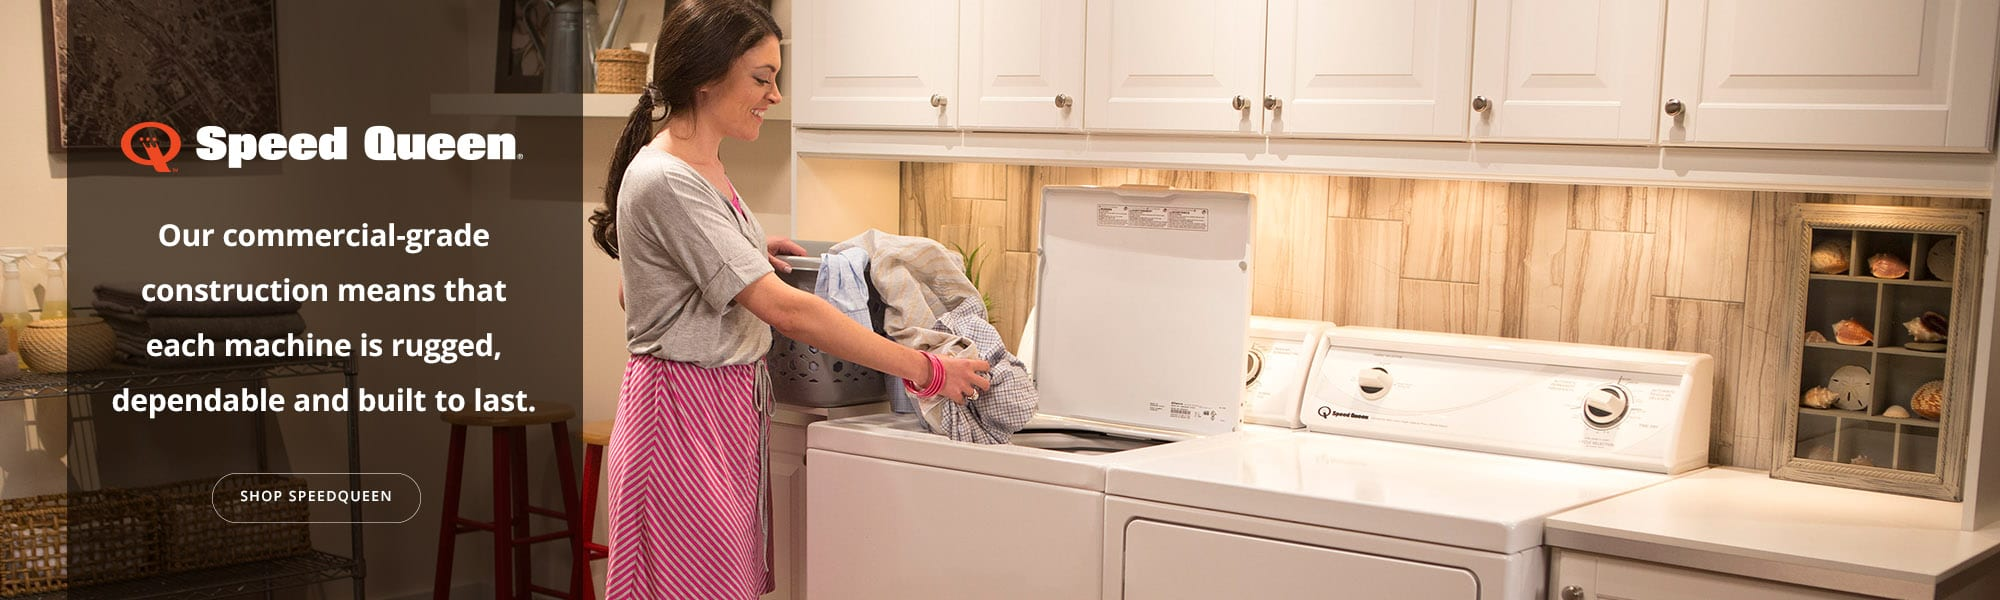 Quality Maytag Appliances And Appliance Service In